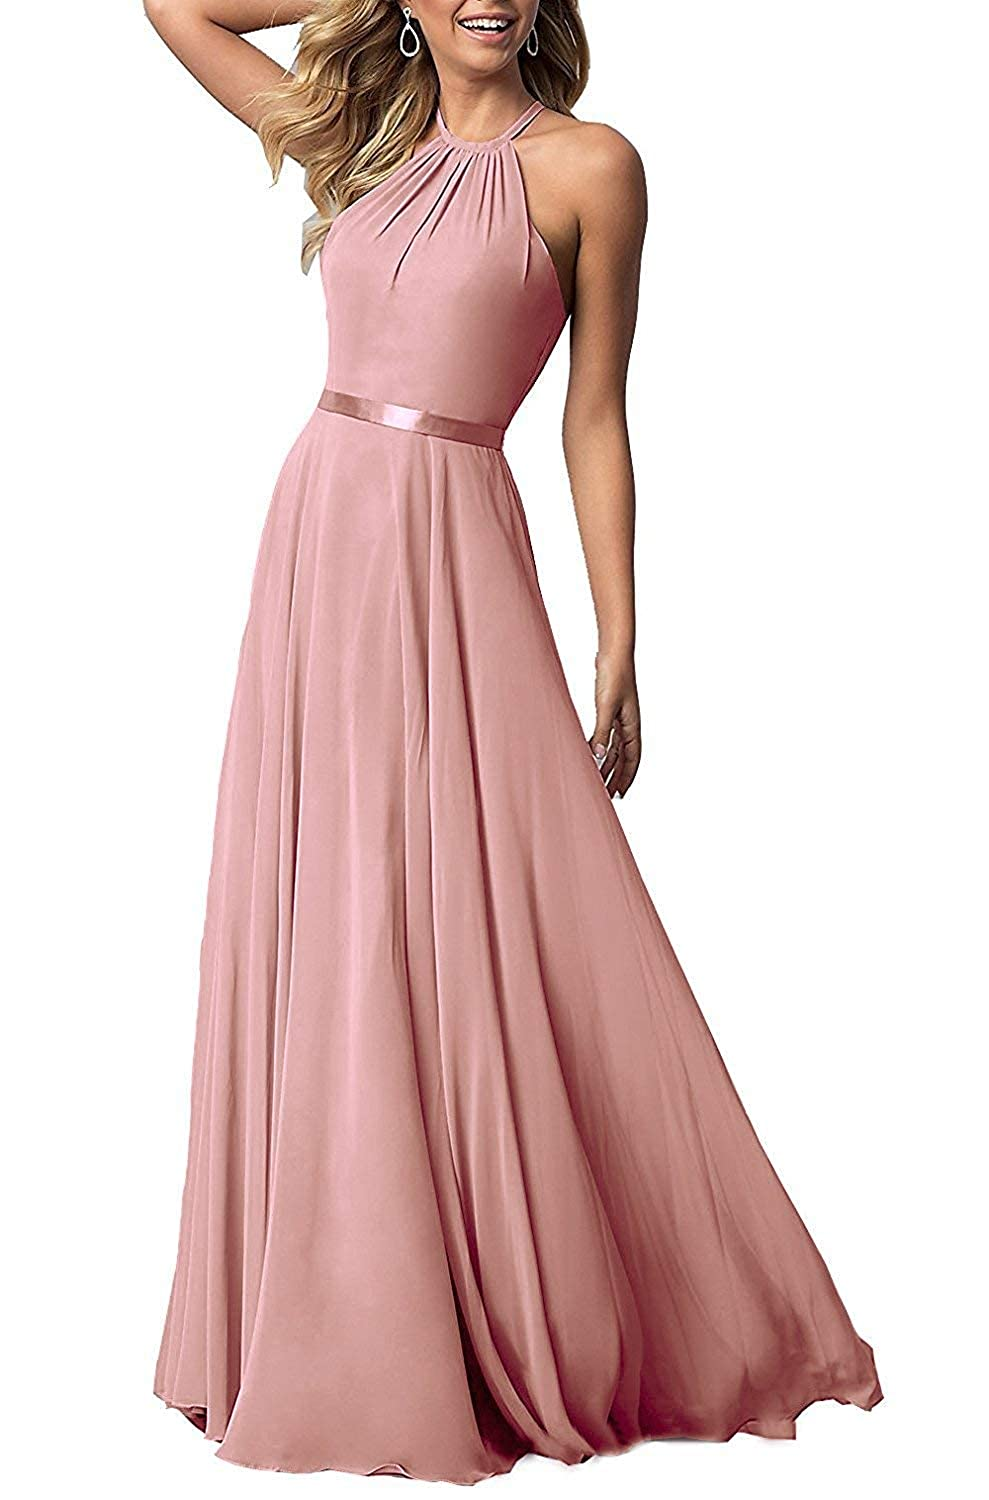 bluesh Pink ROMOO Sexy Halter Long Bridesmaid Dresses Open Back Aline Formal Evening Party Gowns